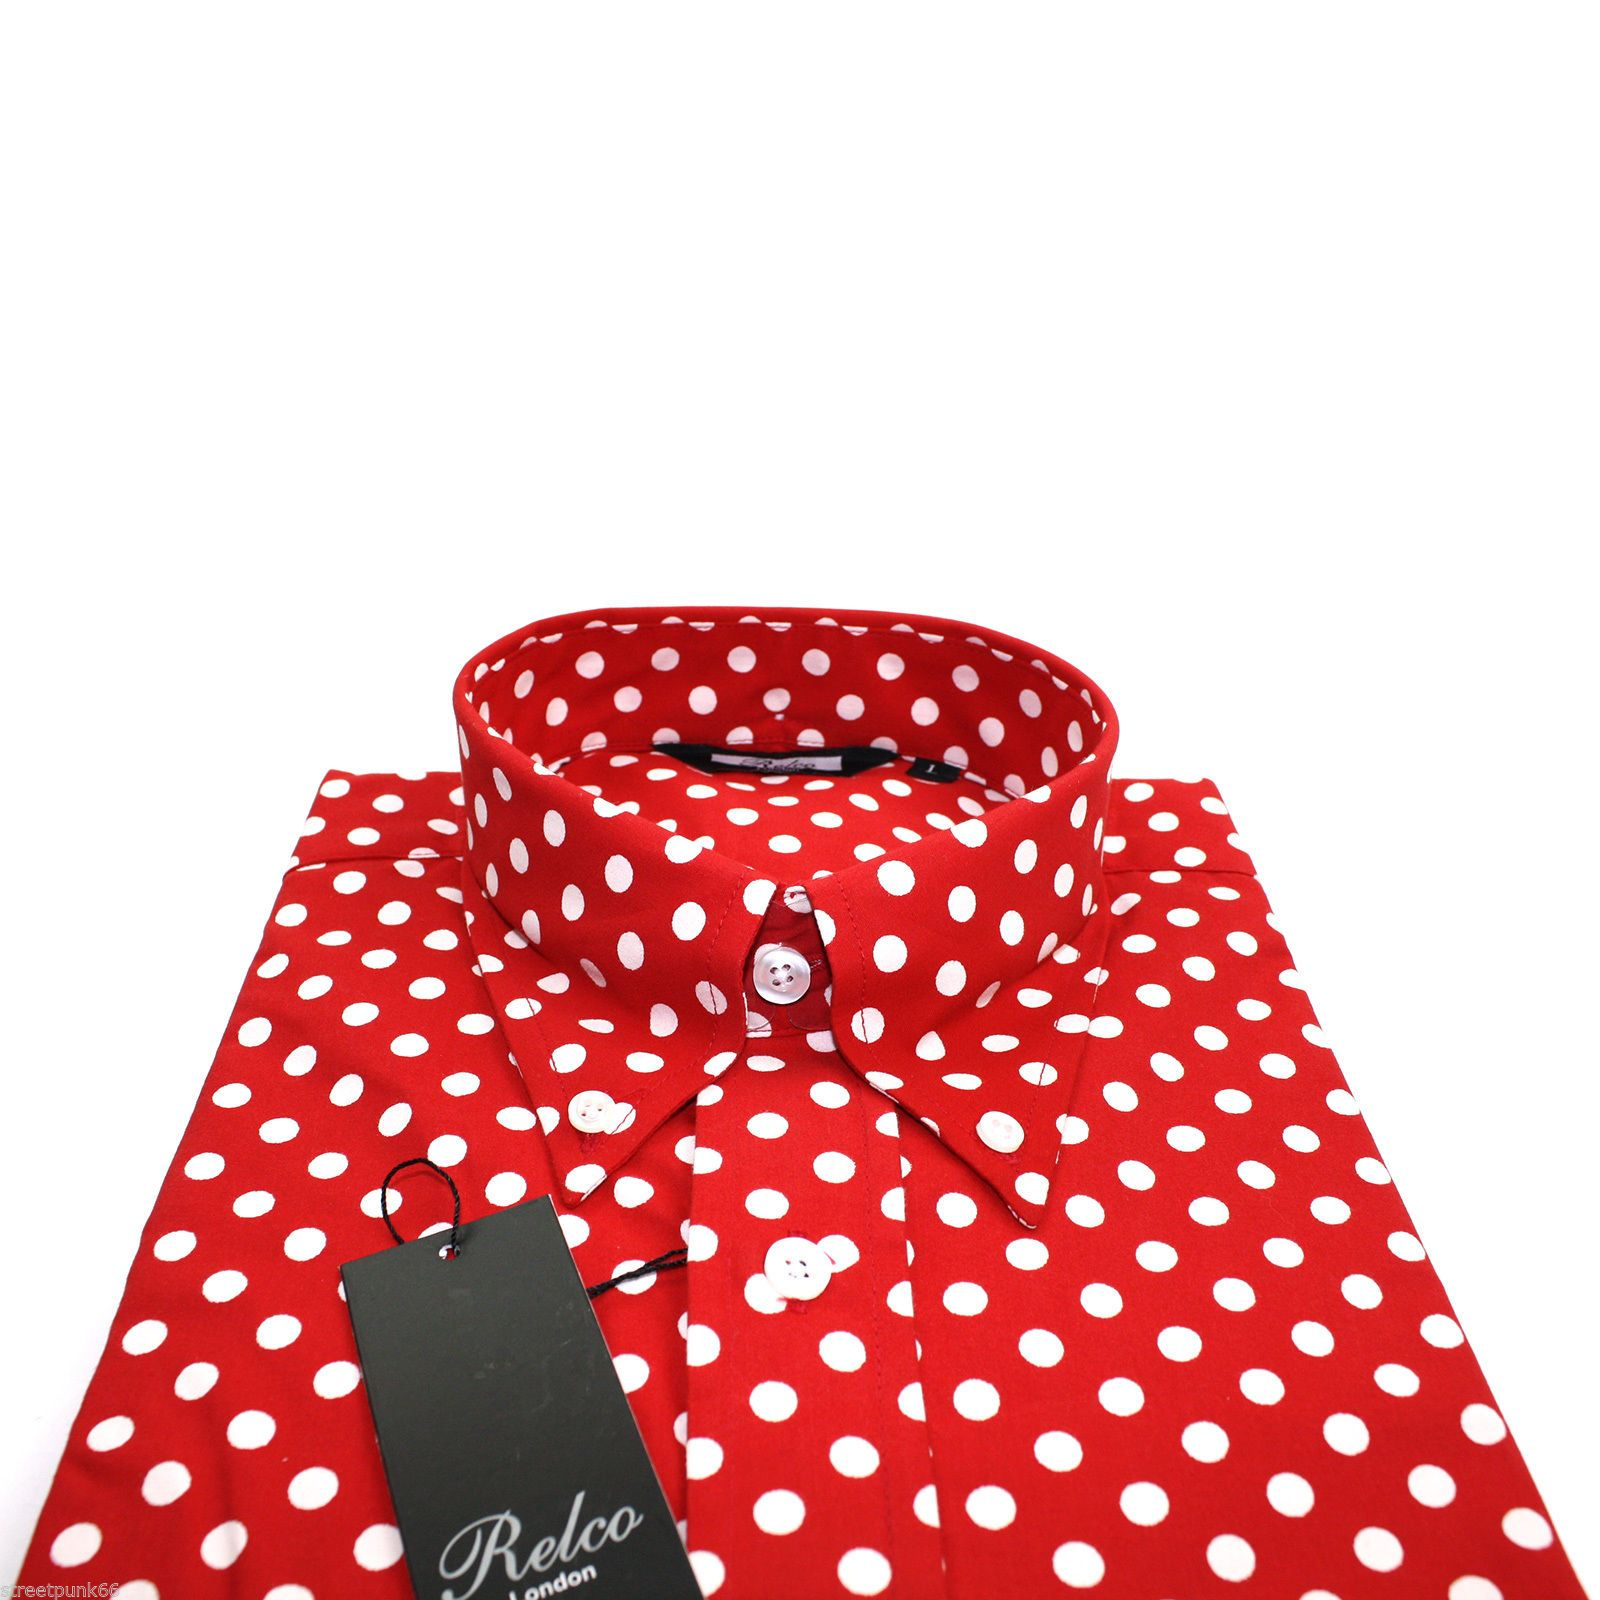 Free shipping available. The Tie Bar offers premium quality men's red polka dot ties at a great value.